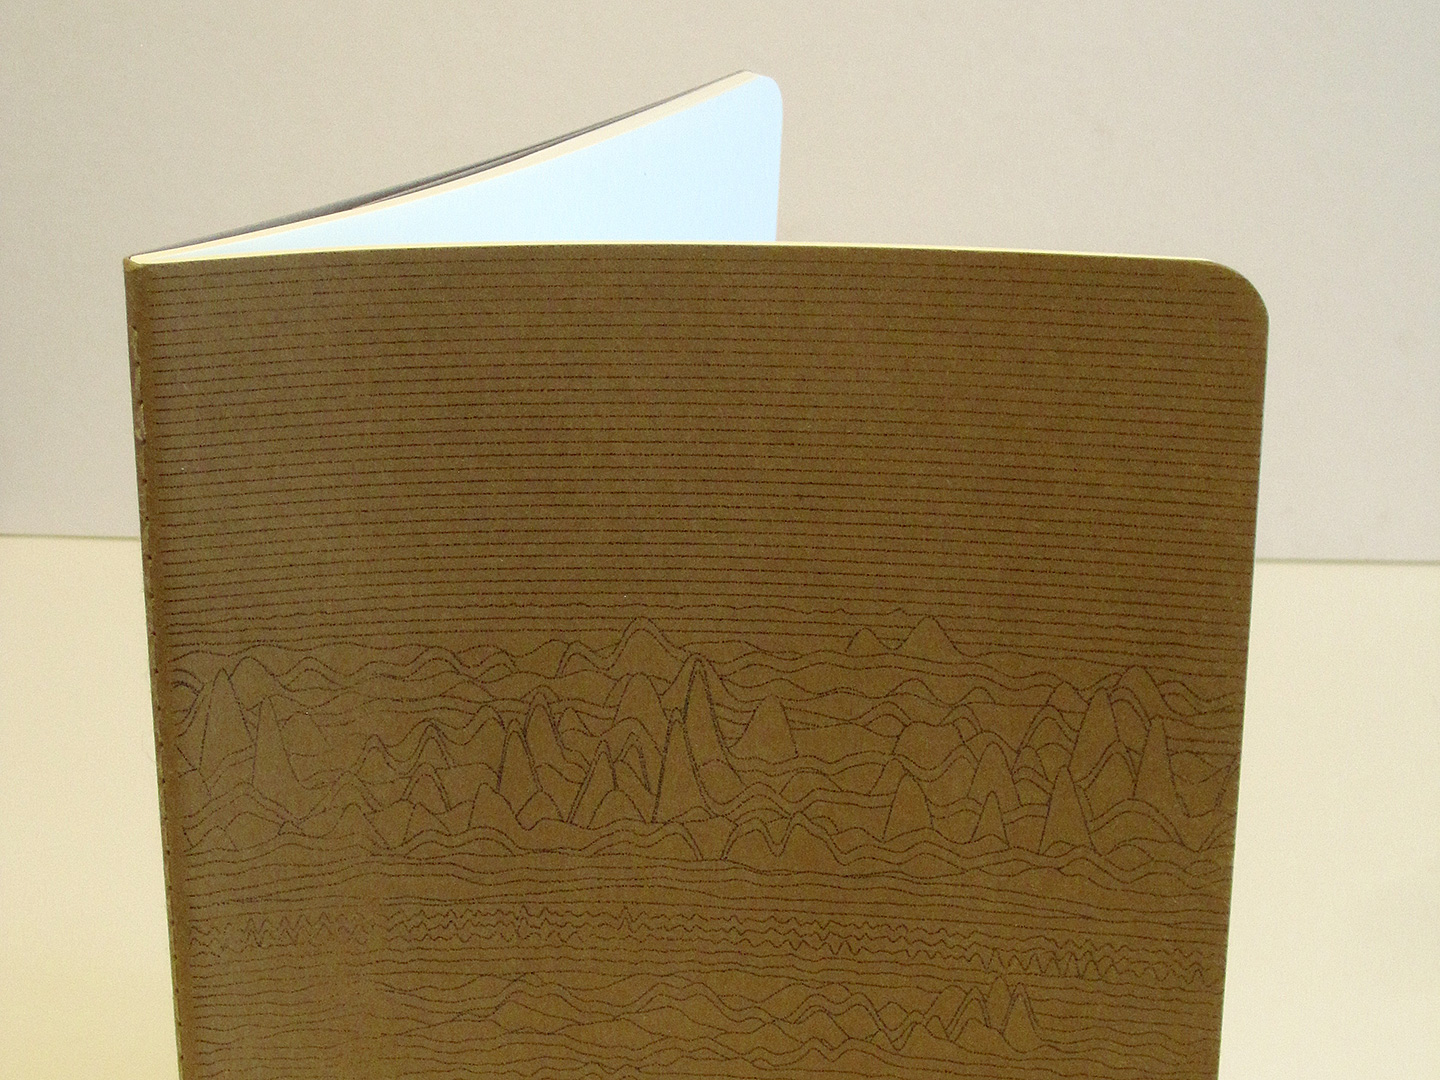 moleskine-notebook-imprint-2